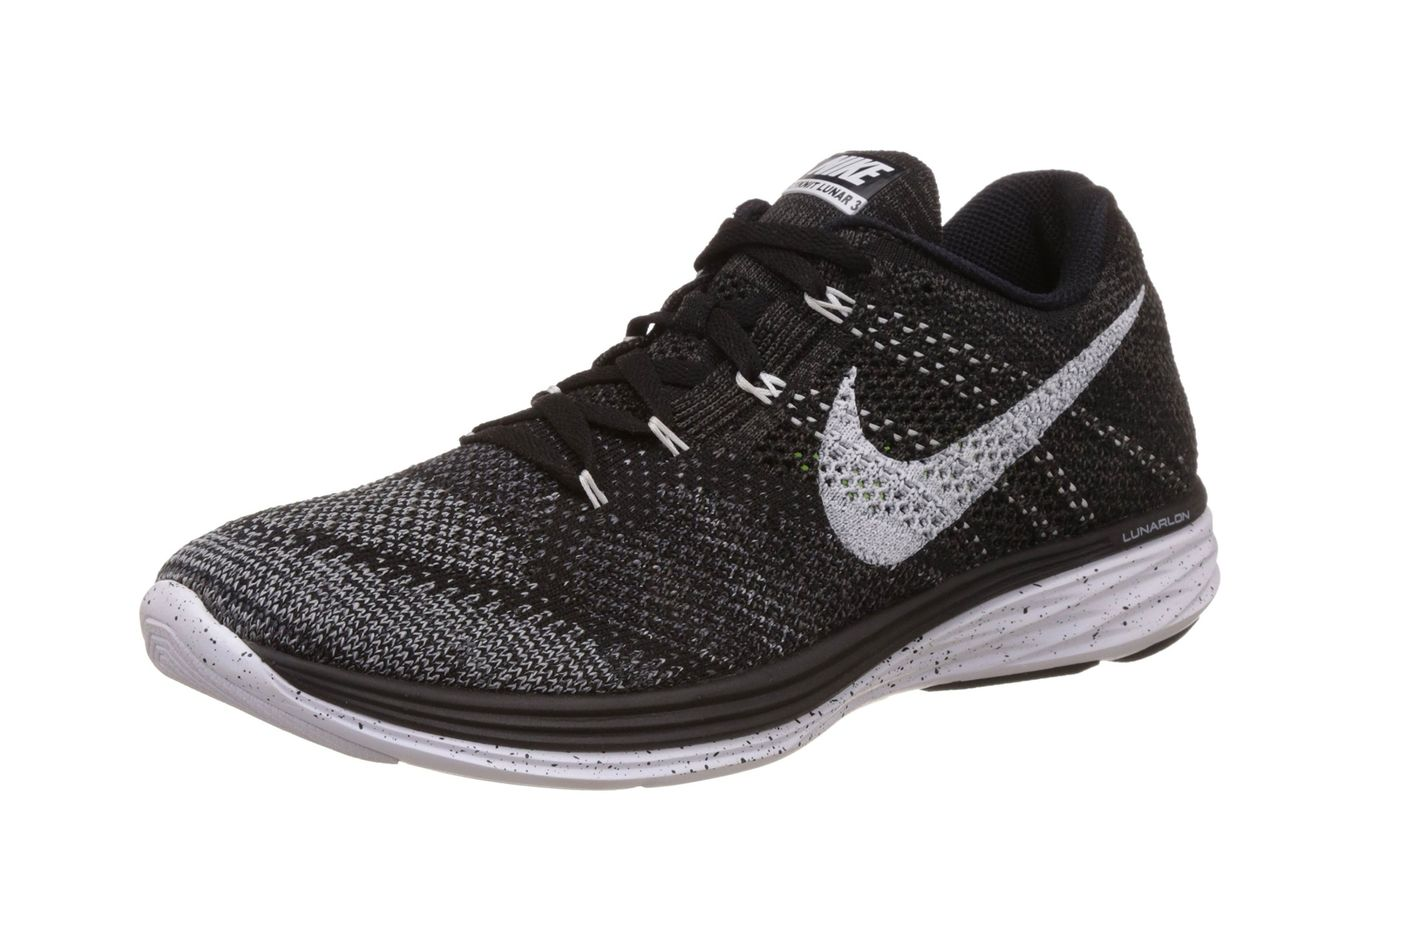 new product a5d9a 608f6 Nike Men s Flyknit Lunar 3 Running Shoe at Amazon